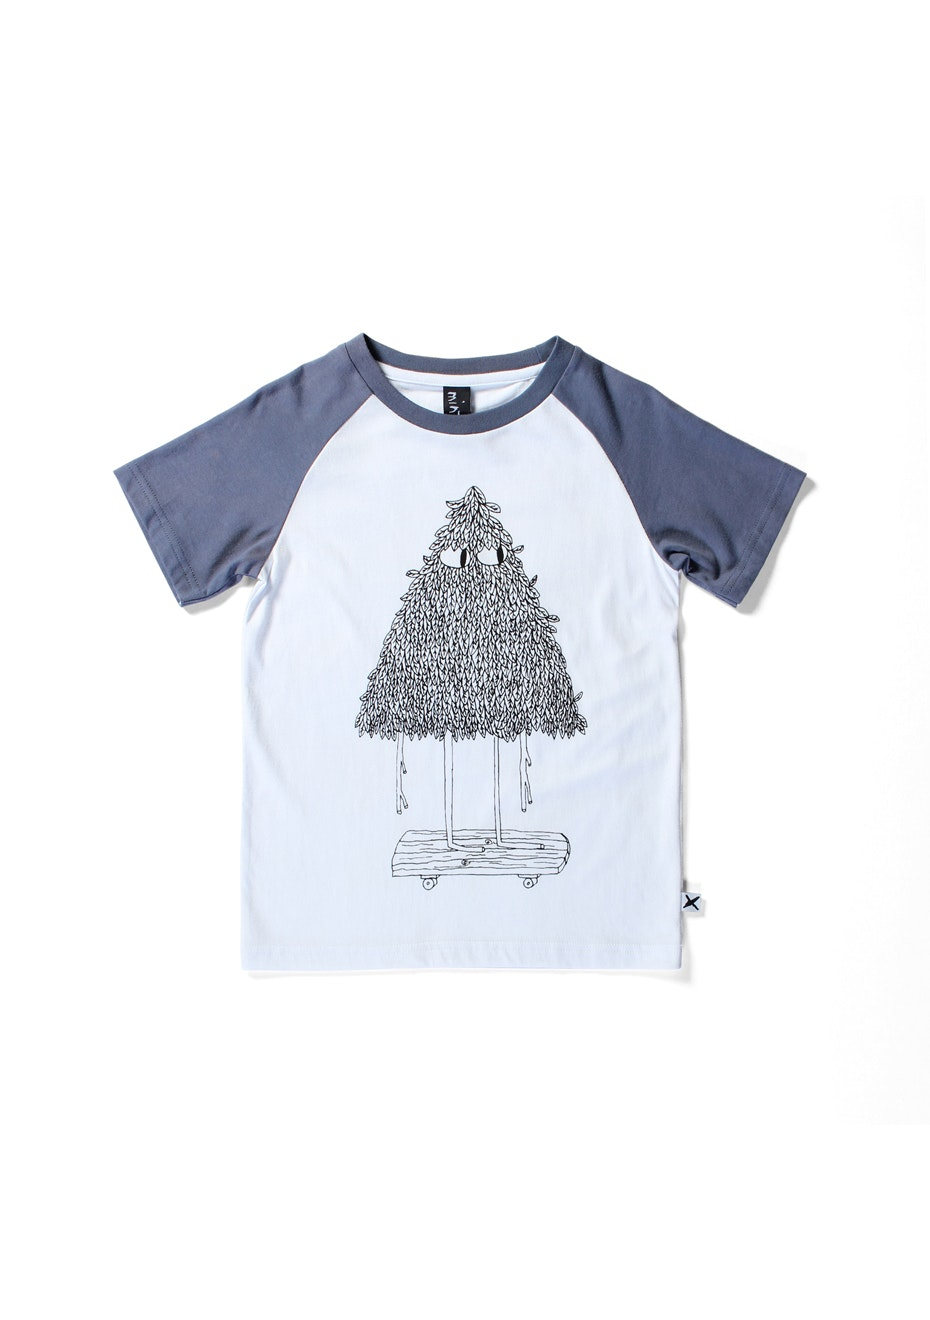 Minti - Skate Tree - Raglan T - Boys - White/Midnight